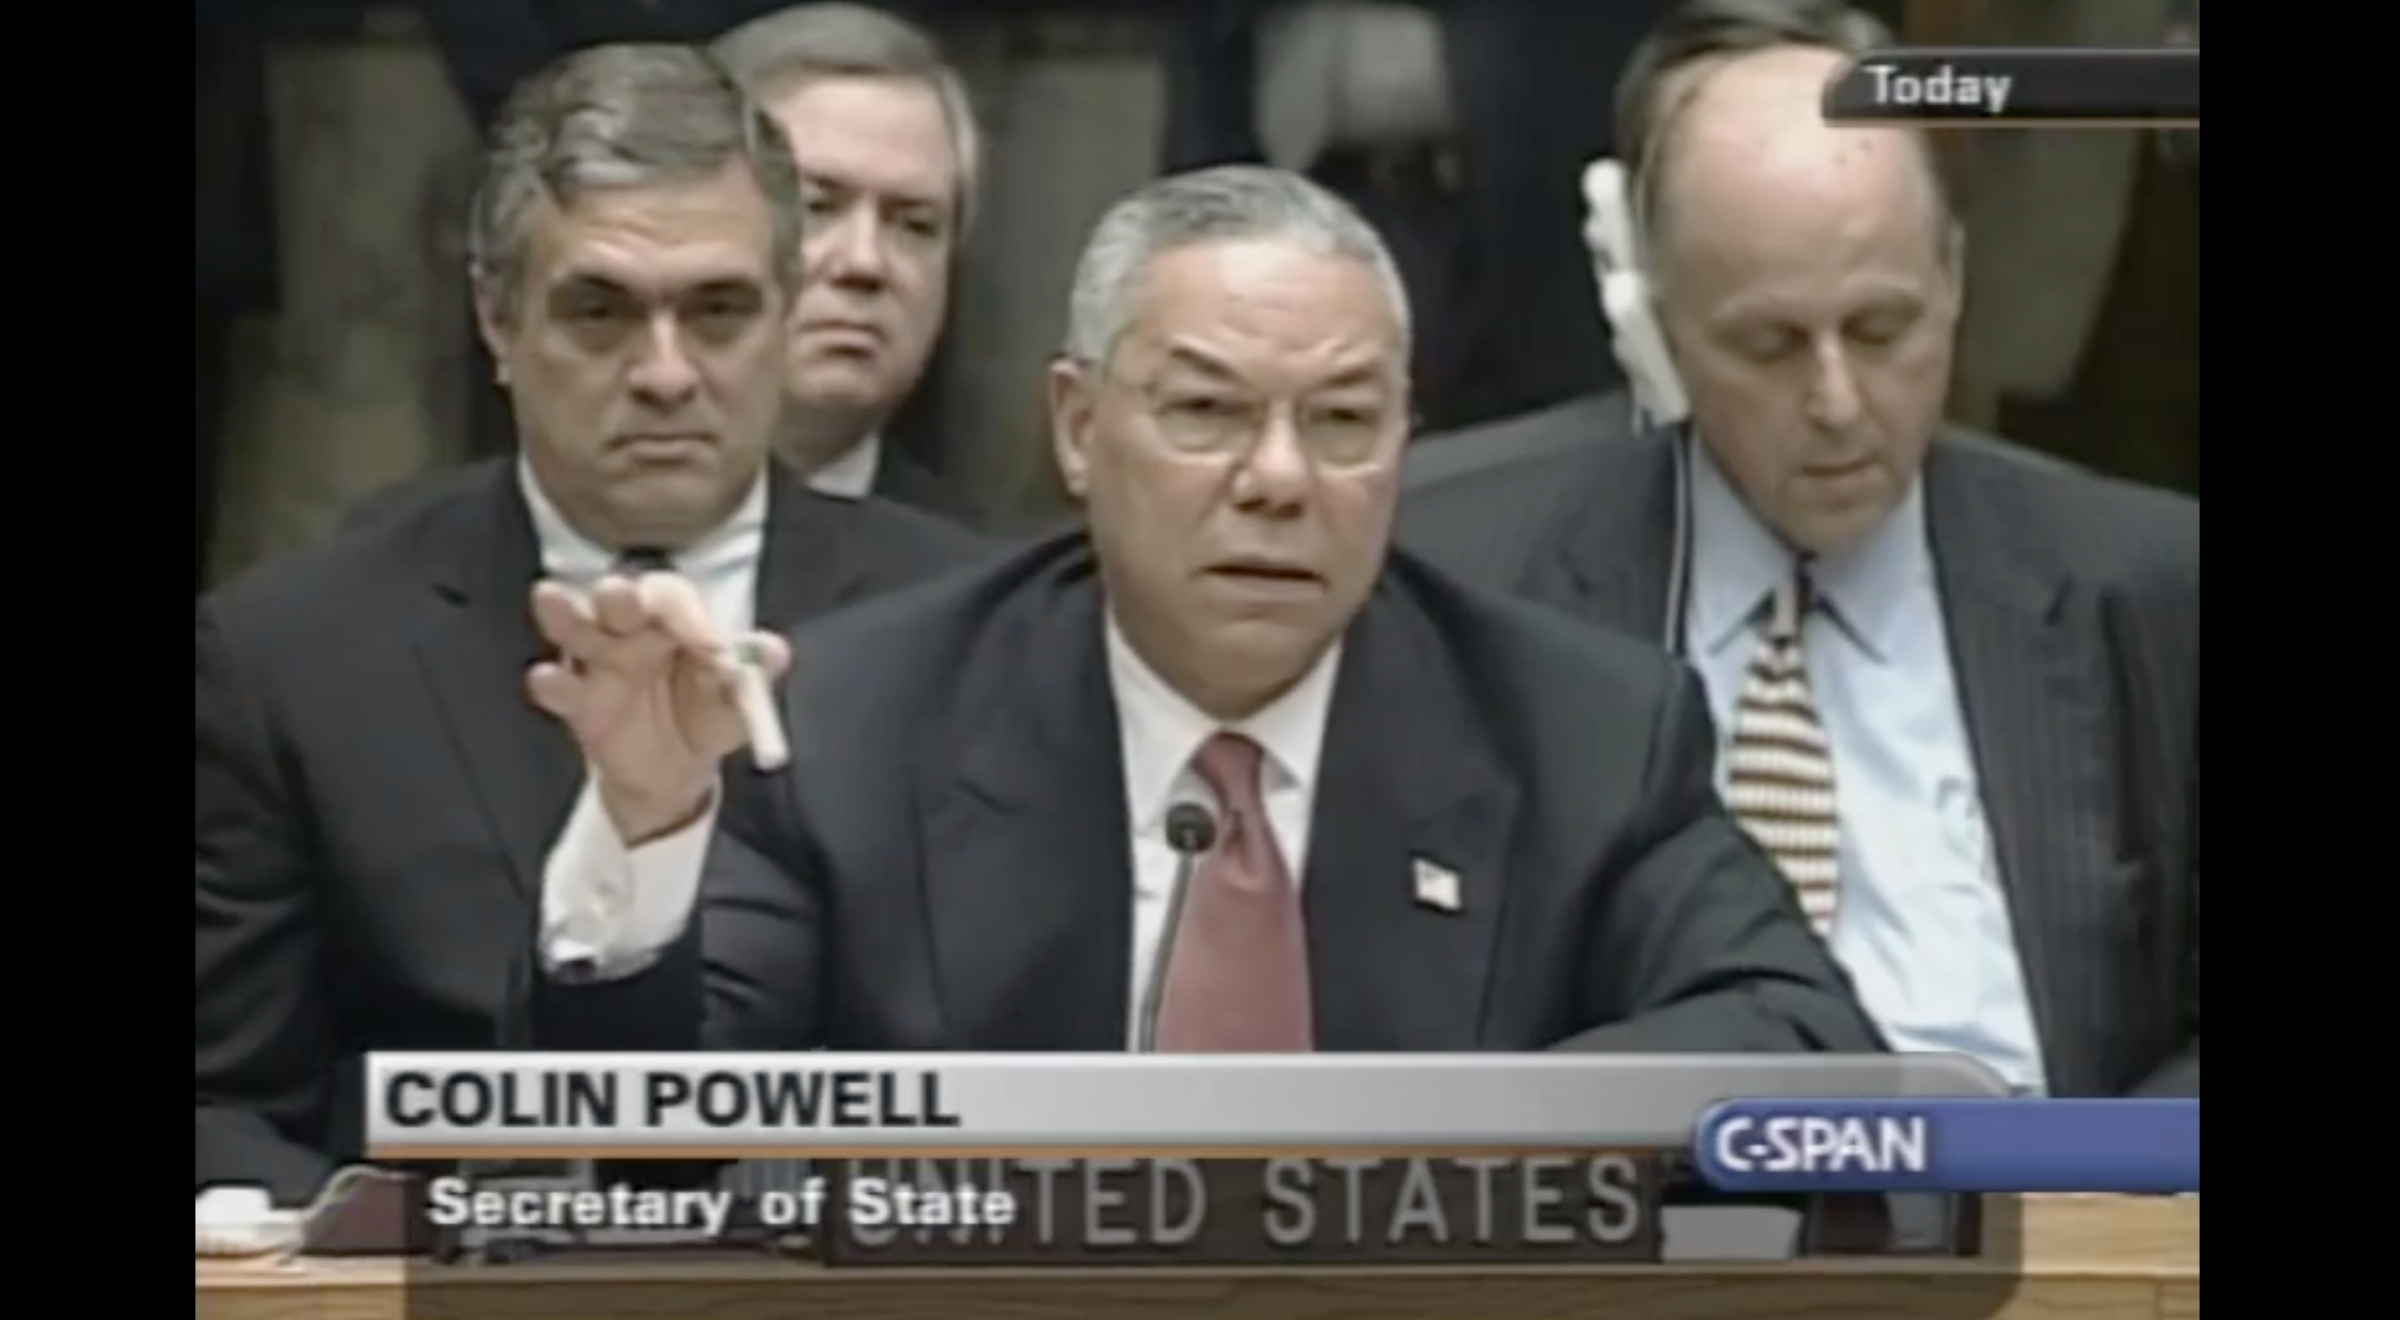 Colin Powell giving his speech to the United Nations in February 2003.